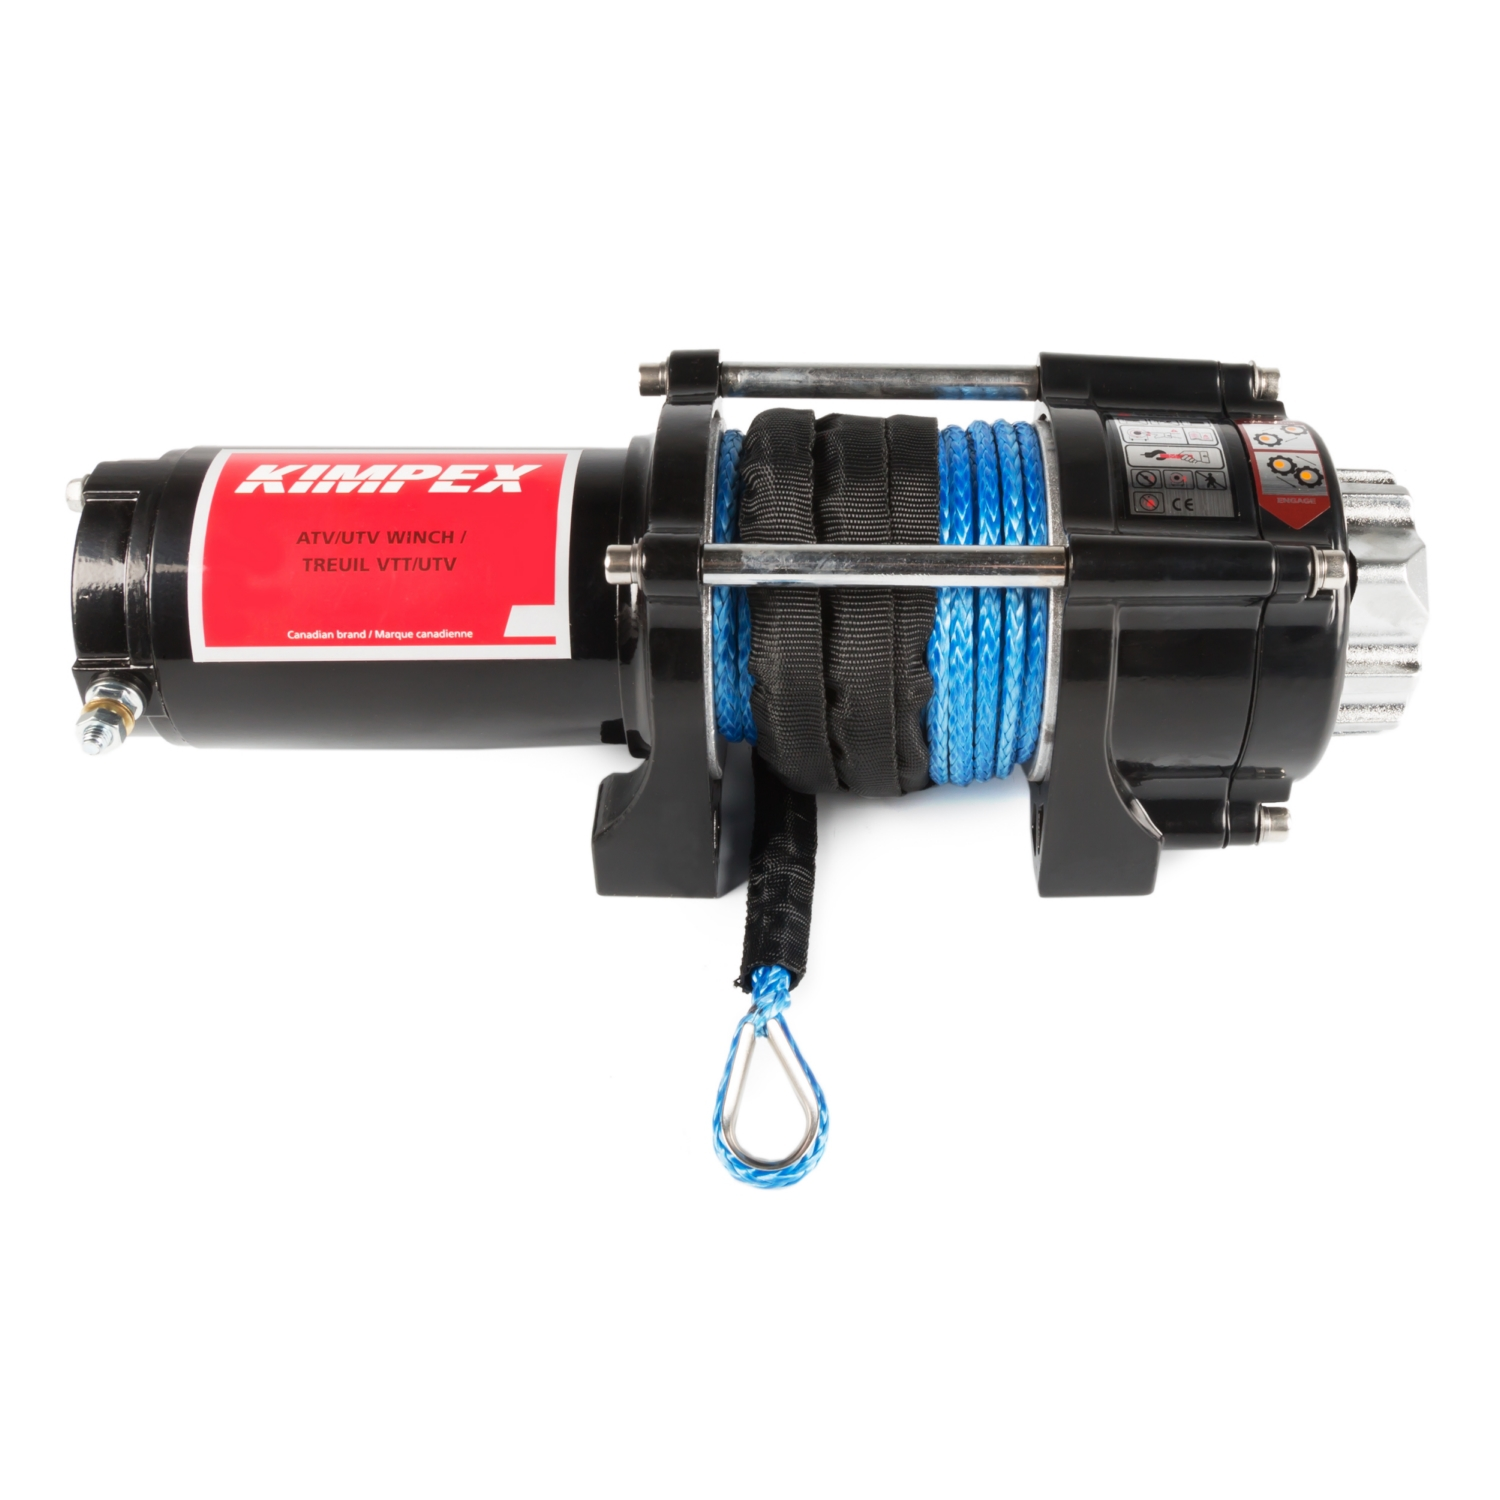 KIMPEX 3500 lbs Winch with Synthetic Rope   #458253